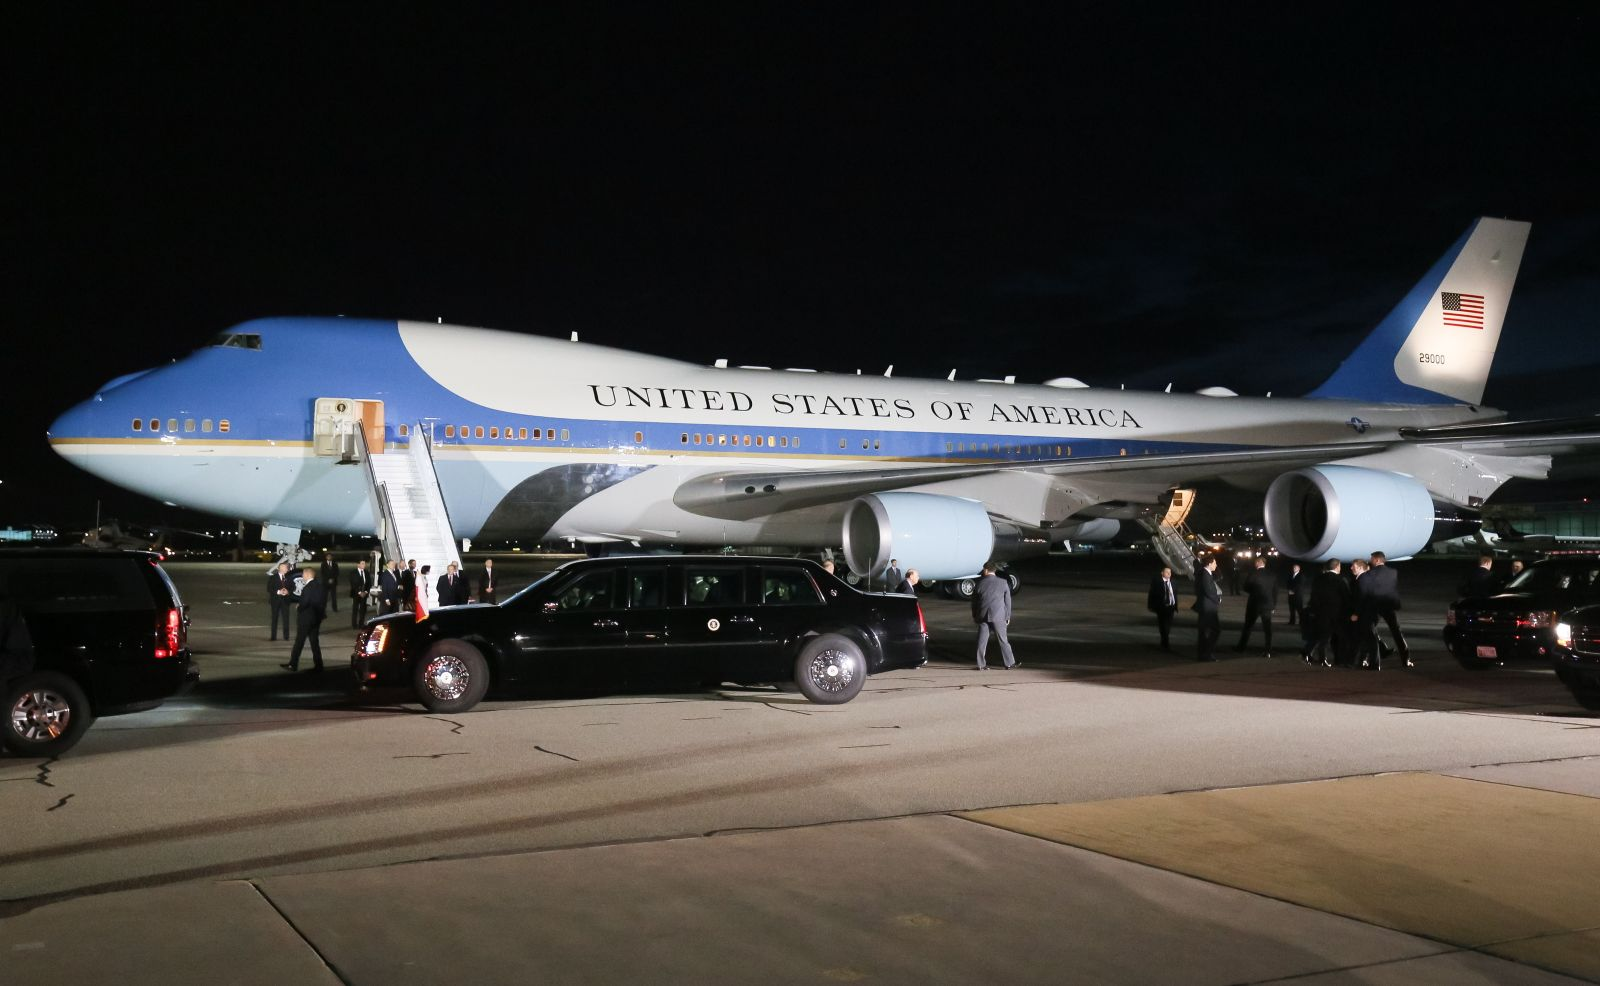 Air Force One i Cadillac One, czyli Bestia